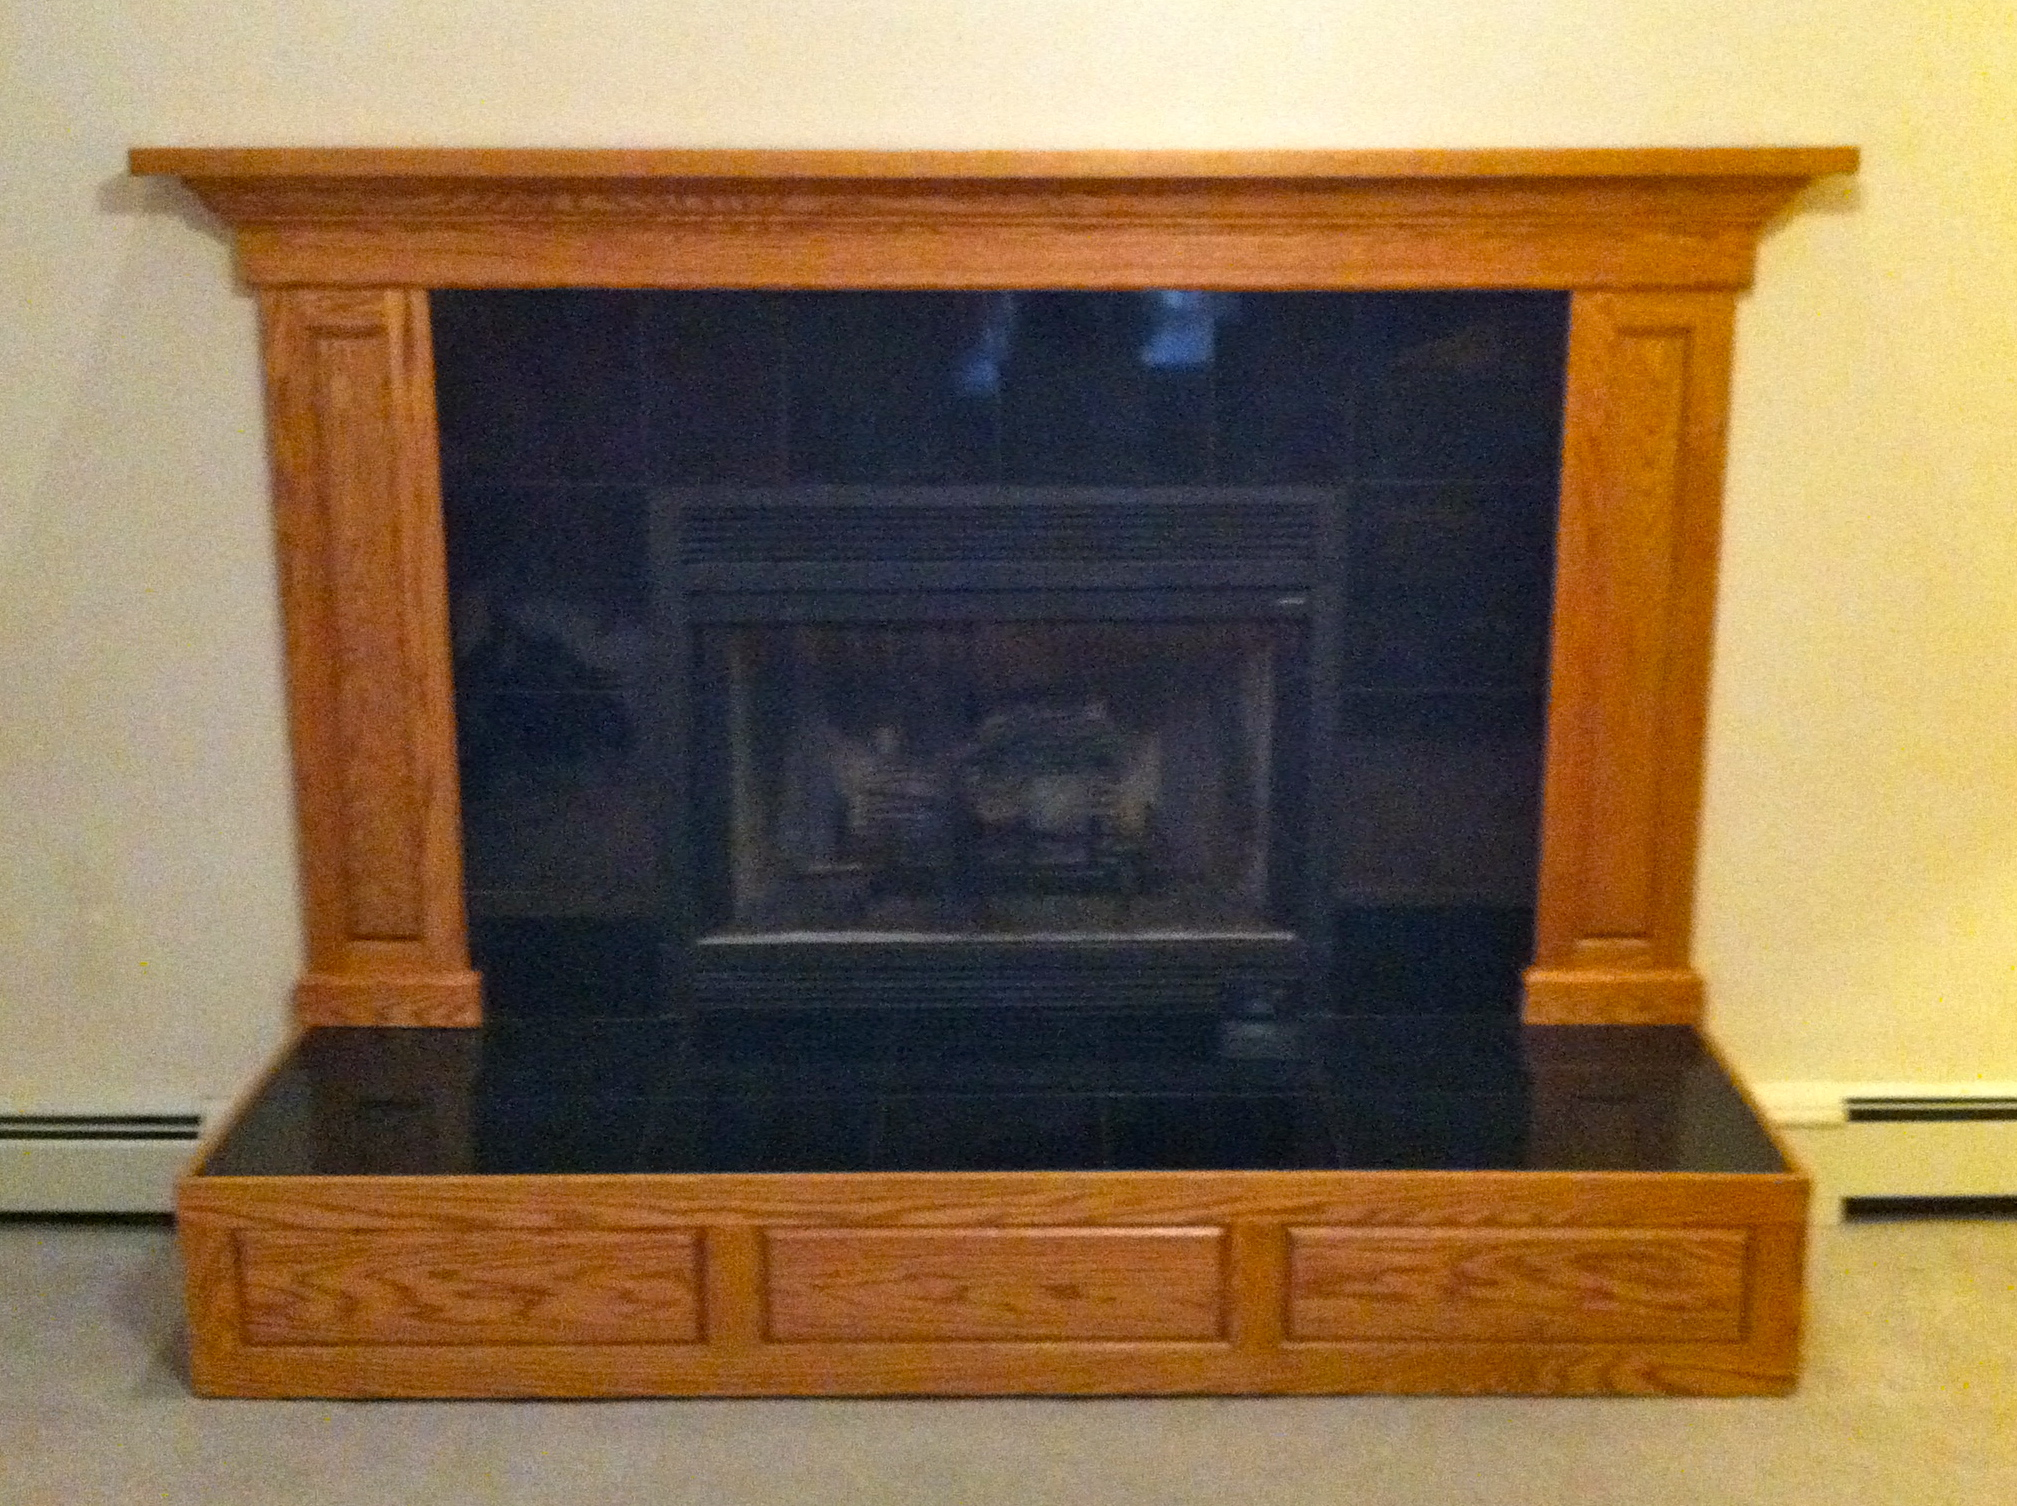 Fireplace Raised Hearth Viewing Gallery